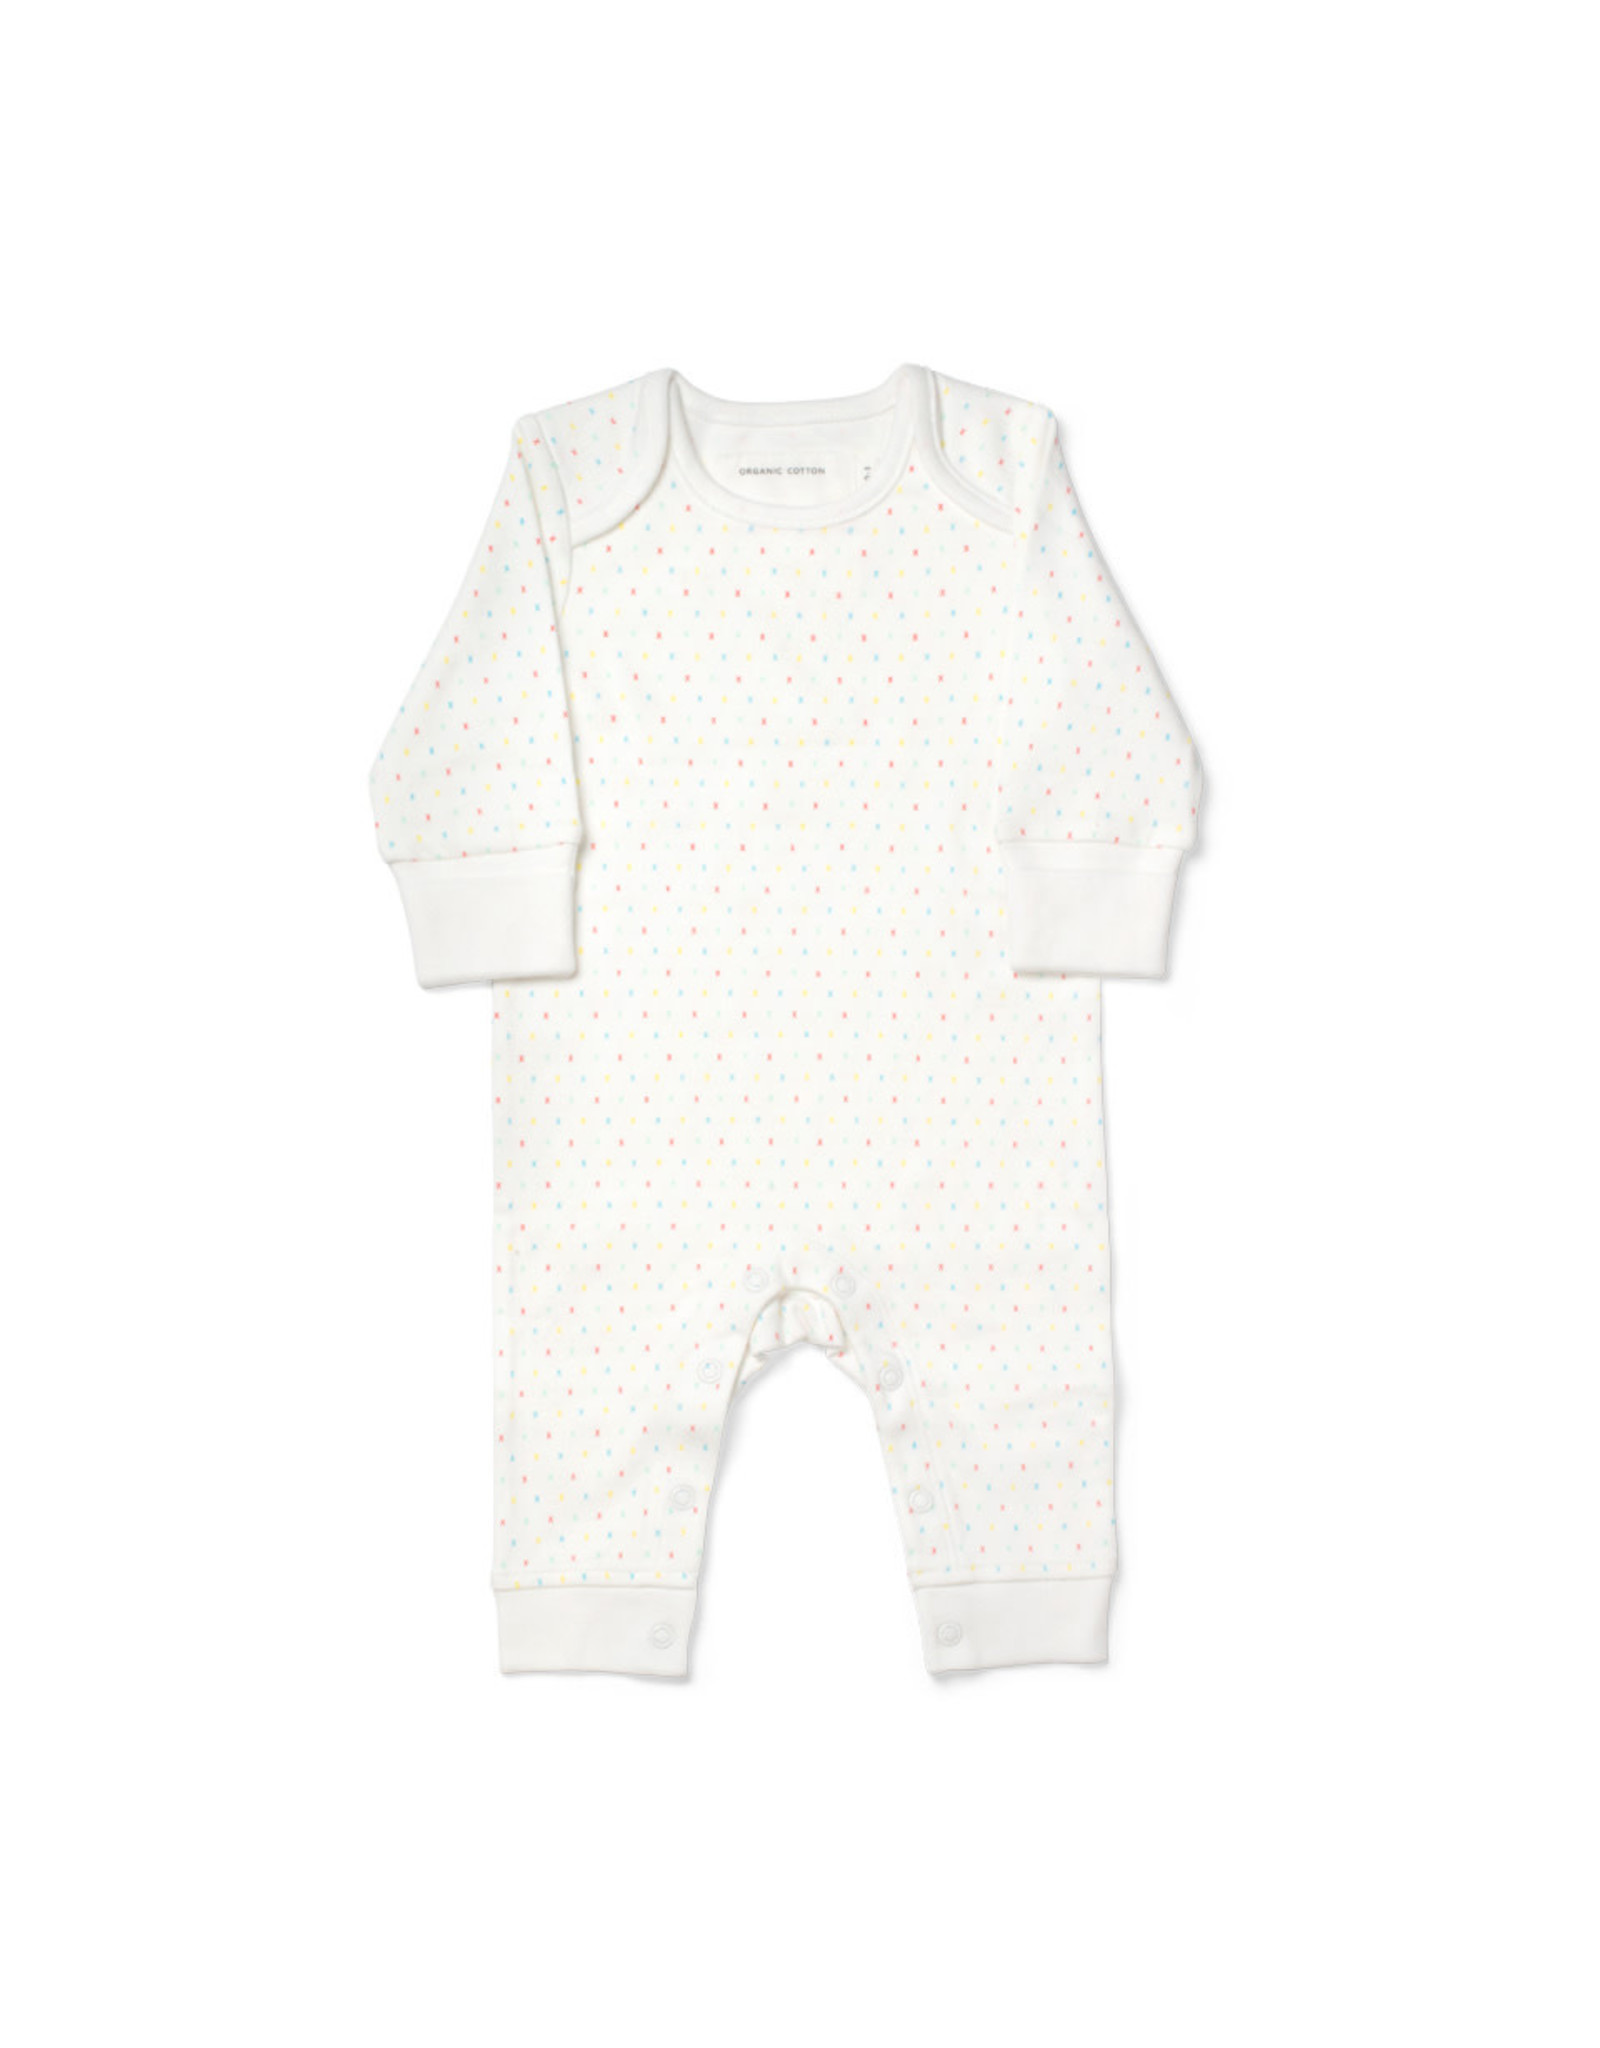 Baby Grow 0-3 months